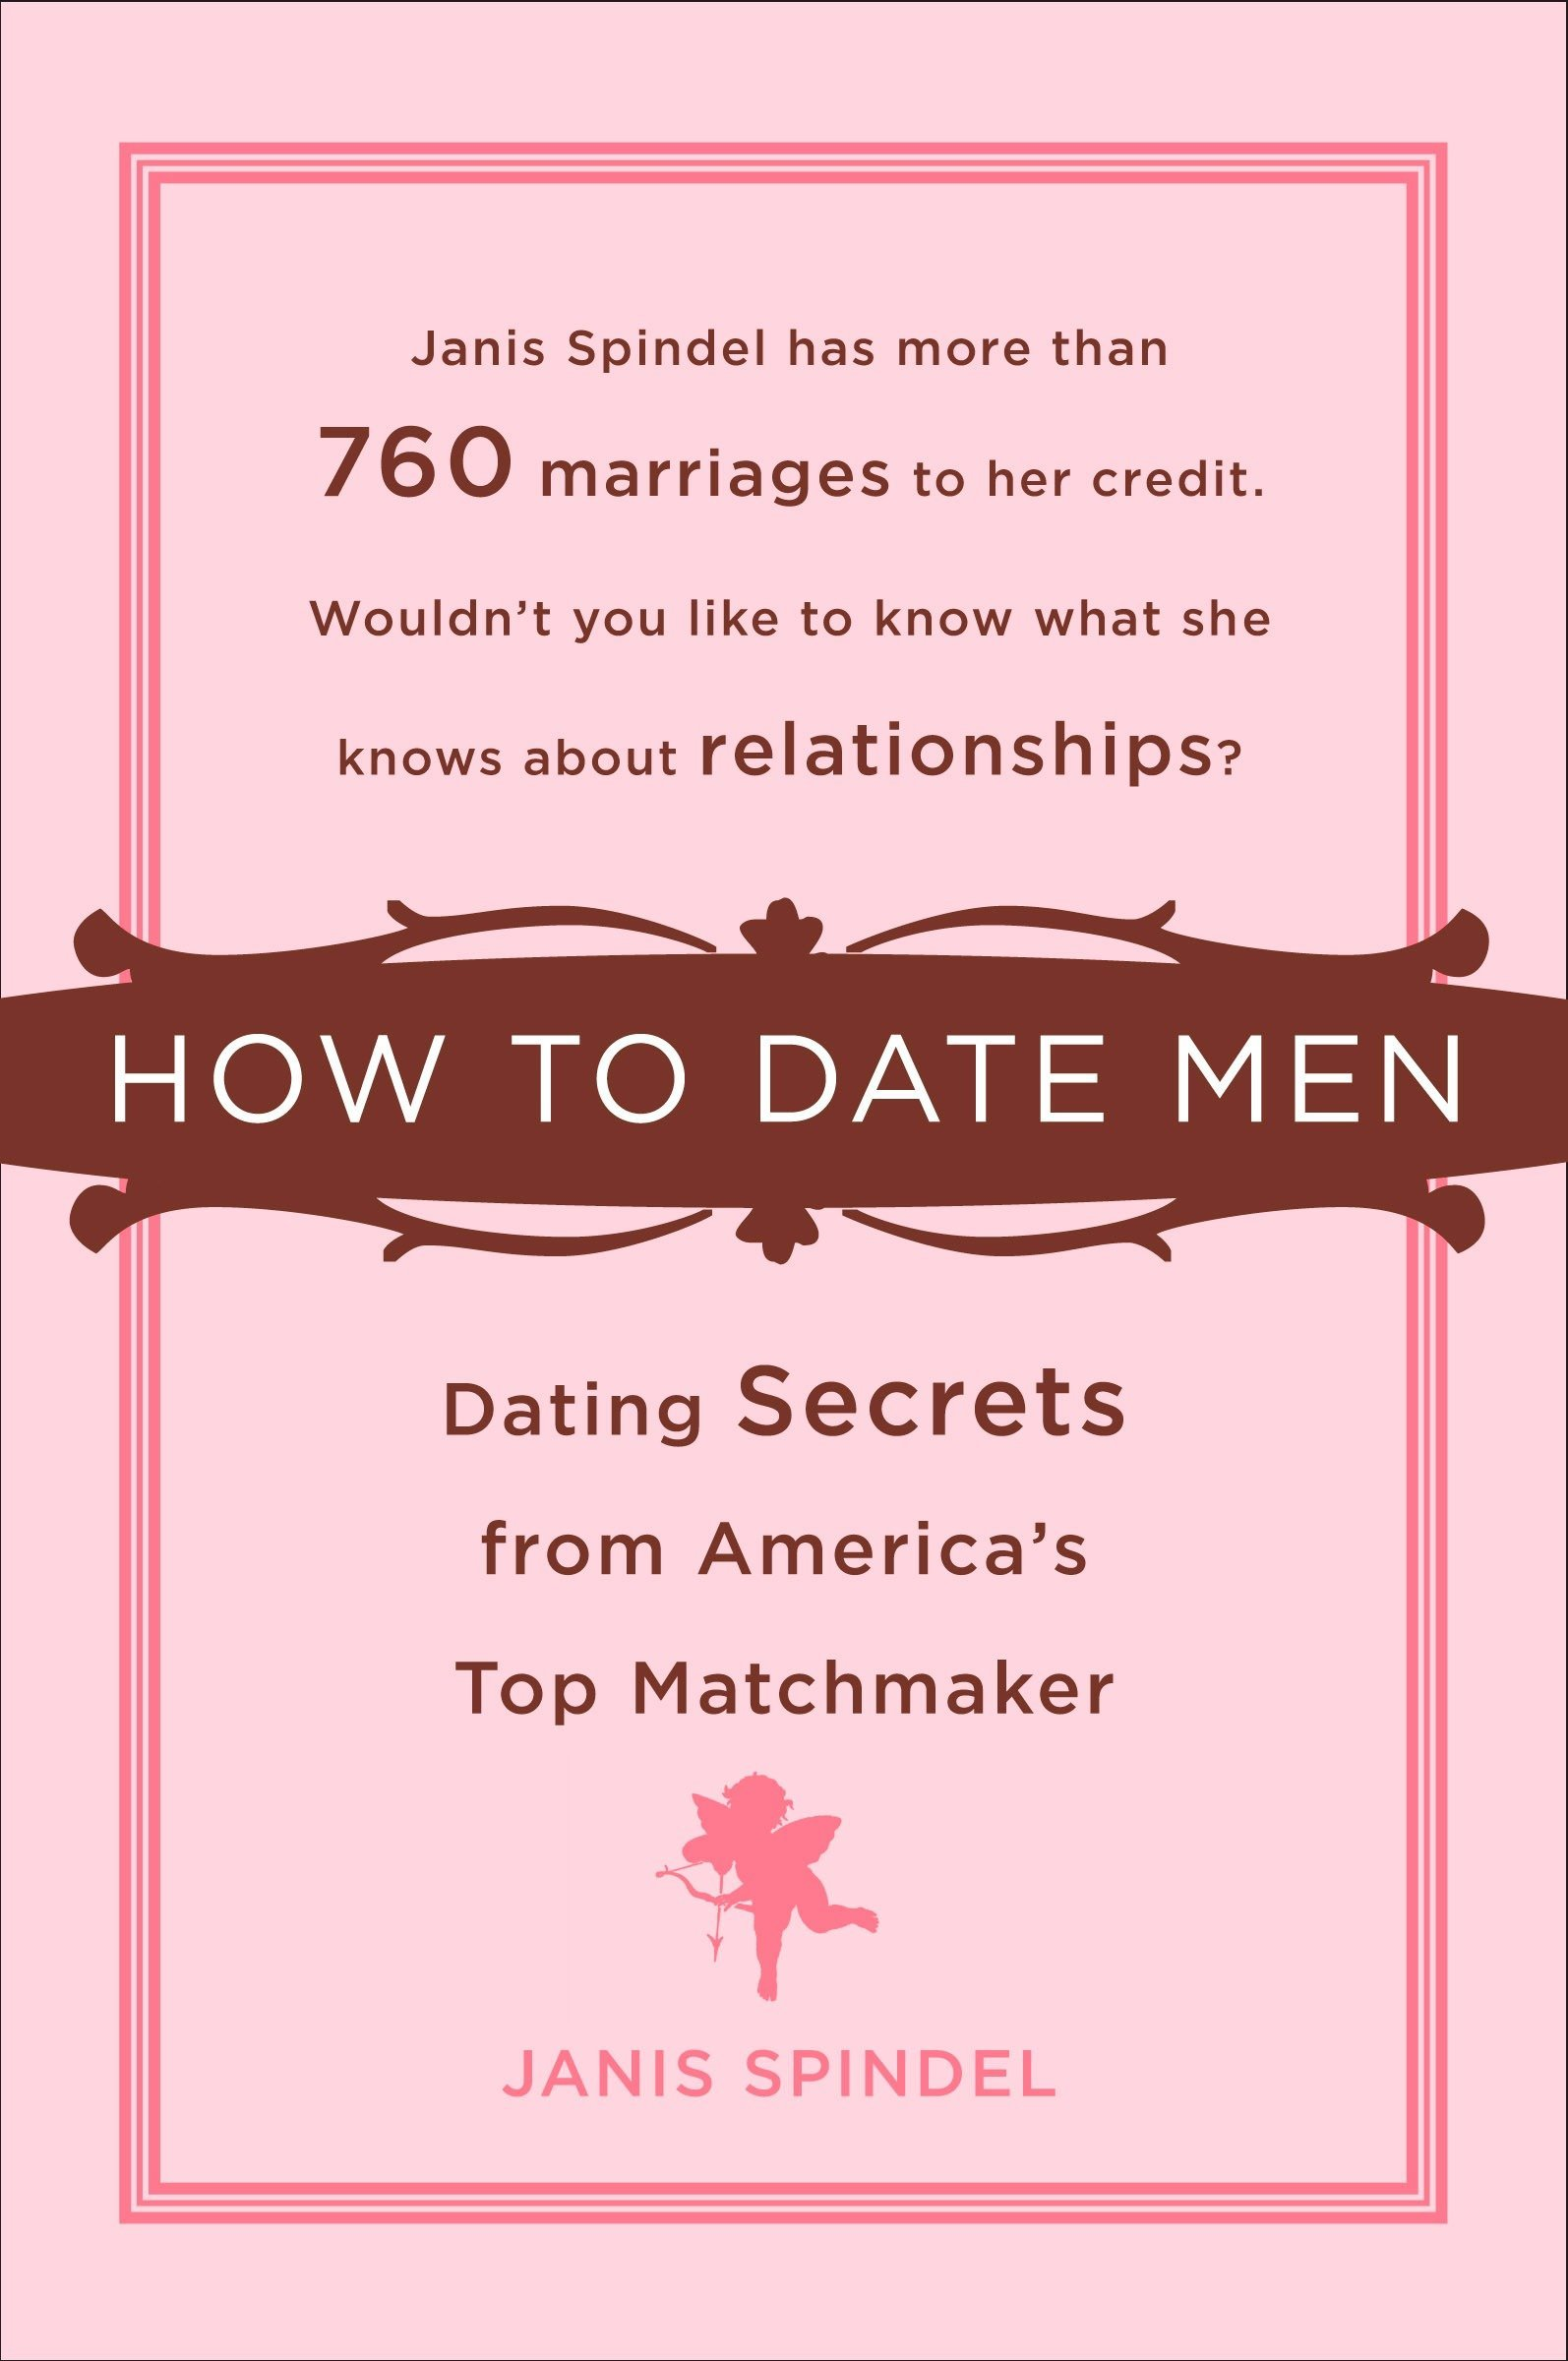 Dating matchmaker quiz